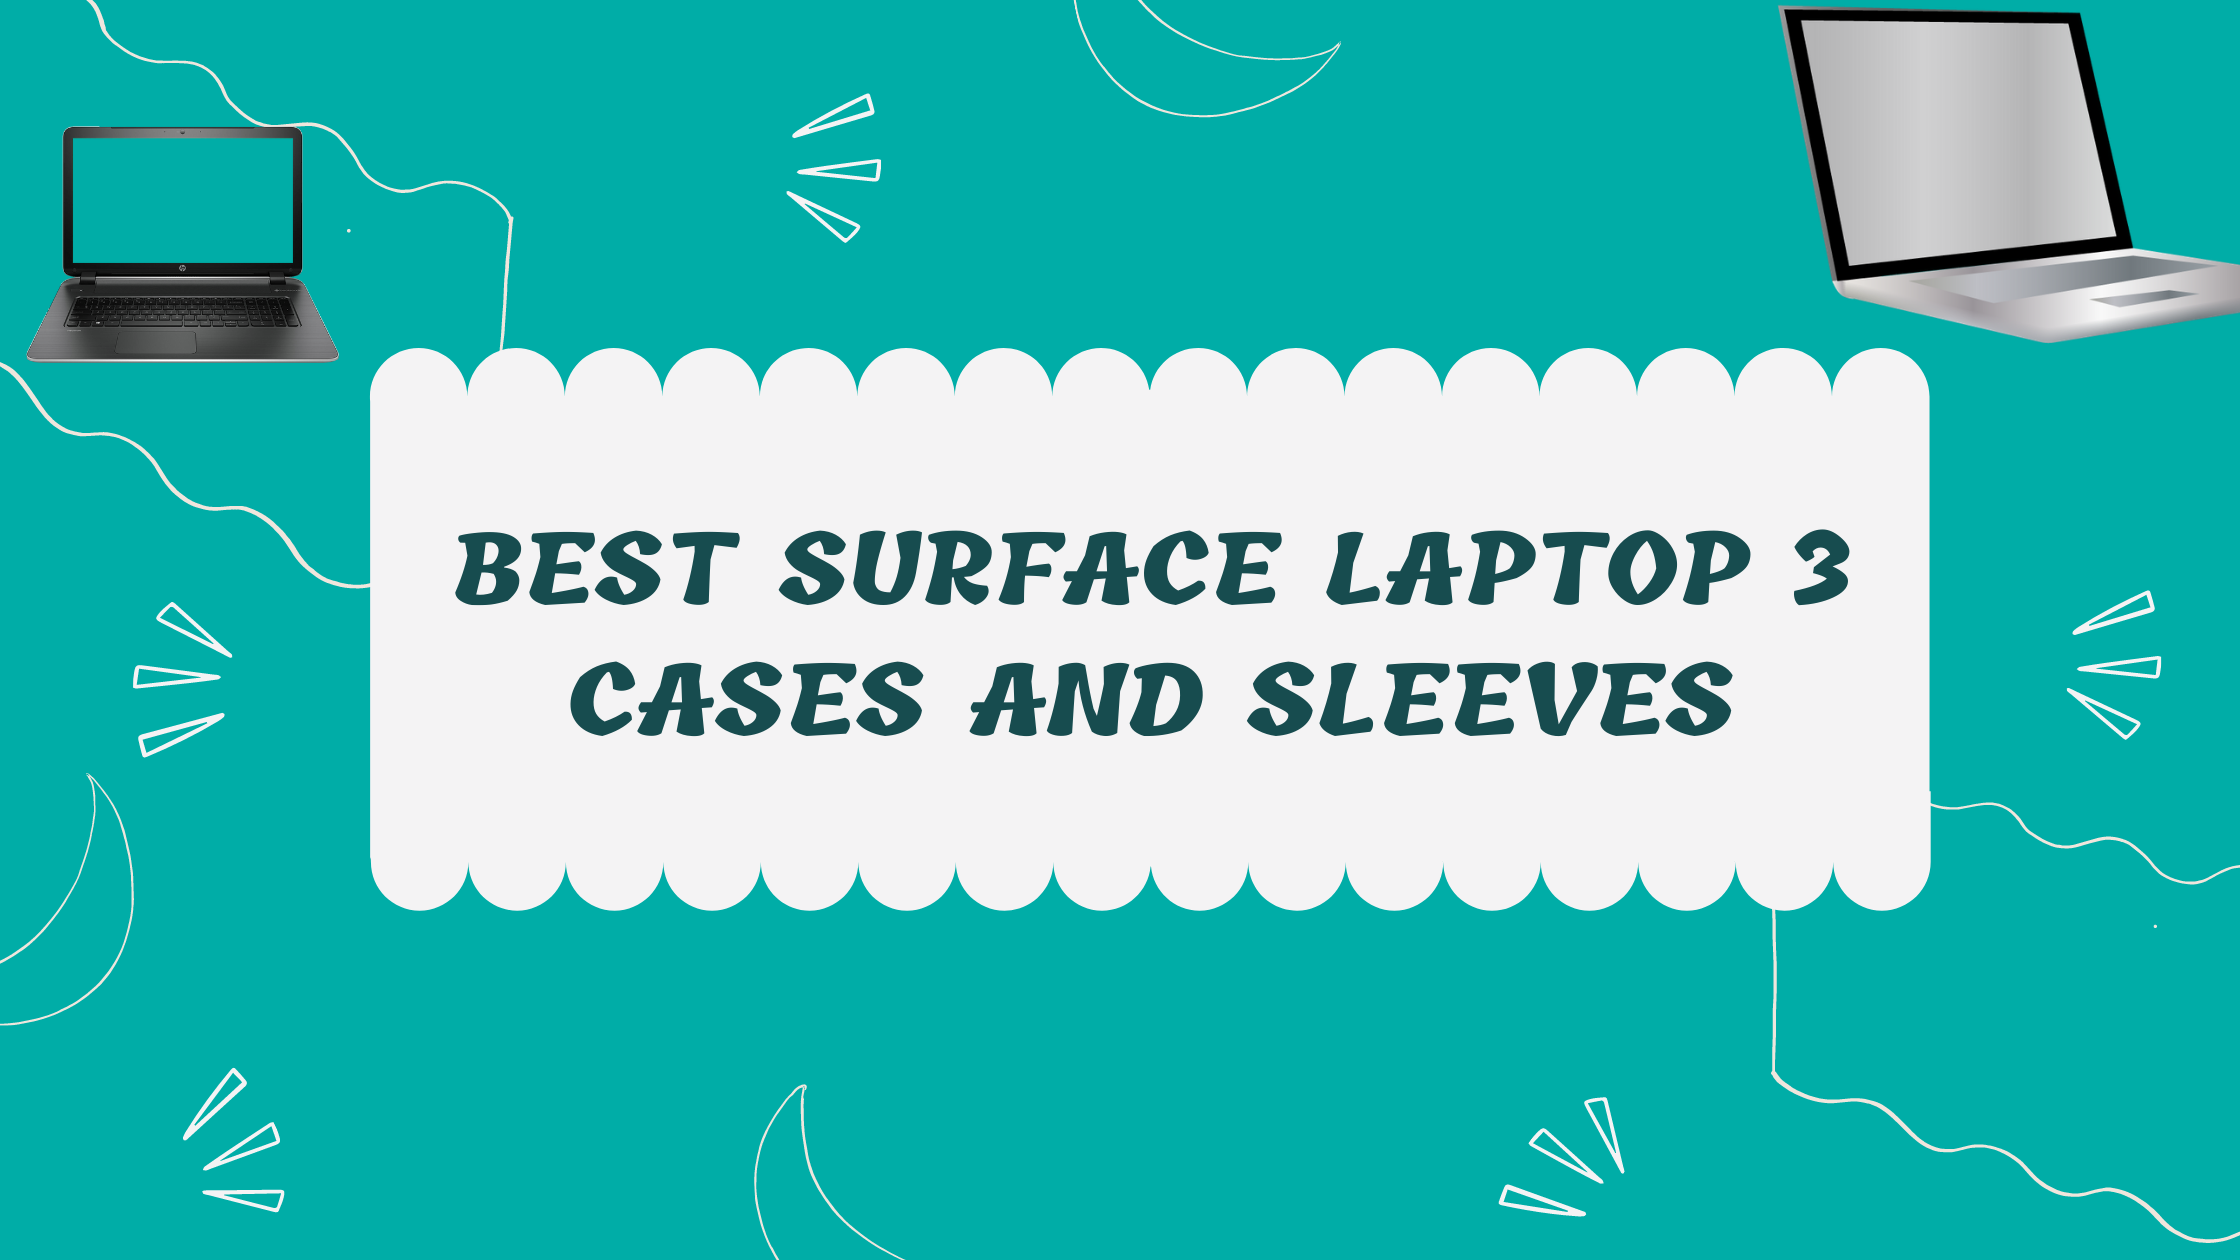 5 Stunning Surface Laptop 3 Cases and Sleeves